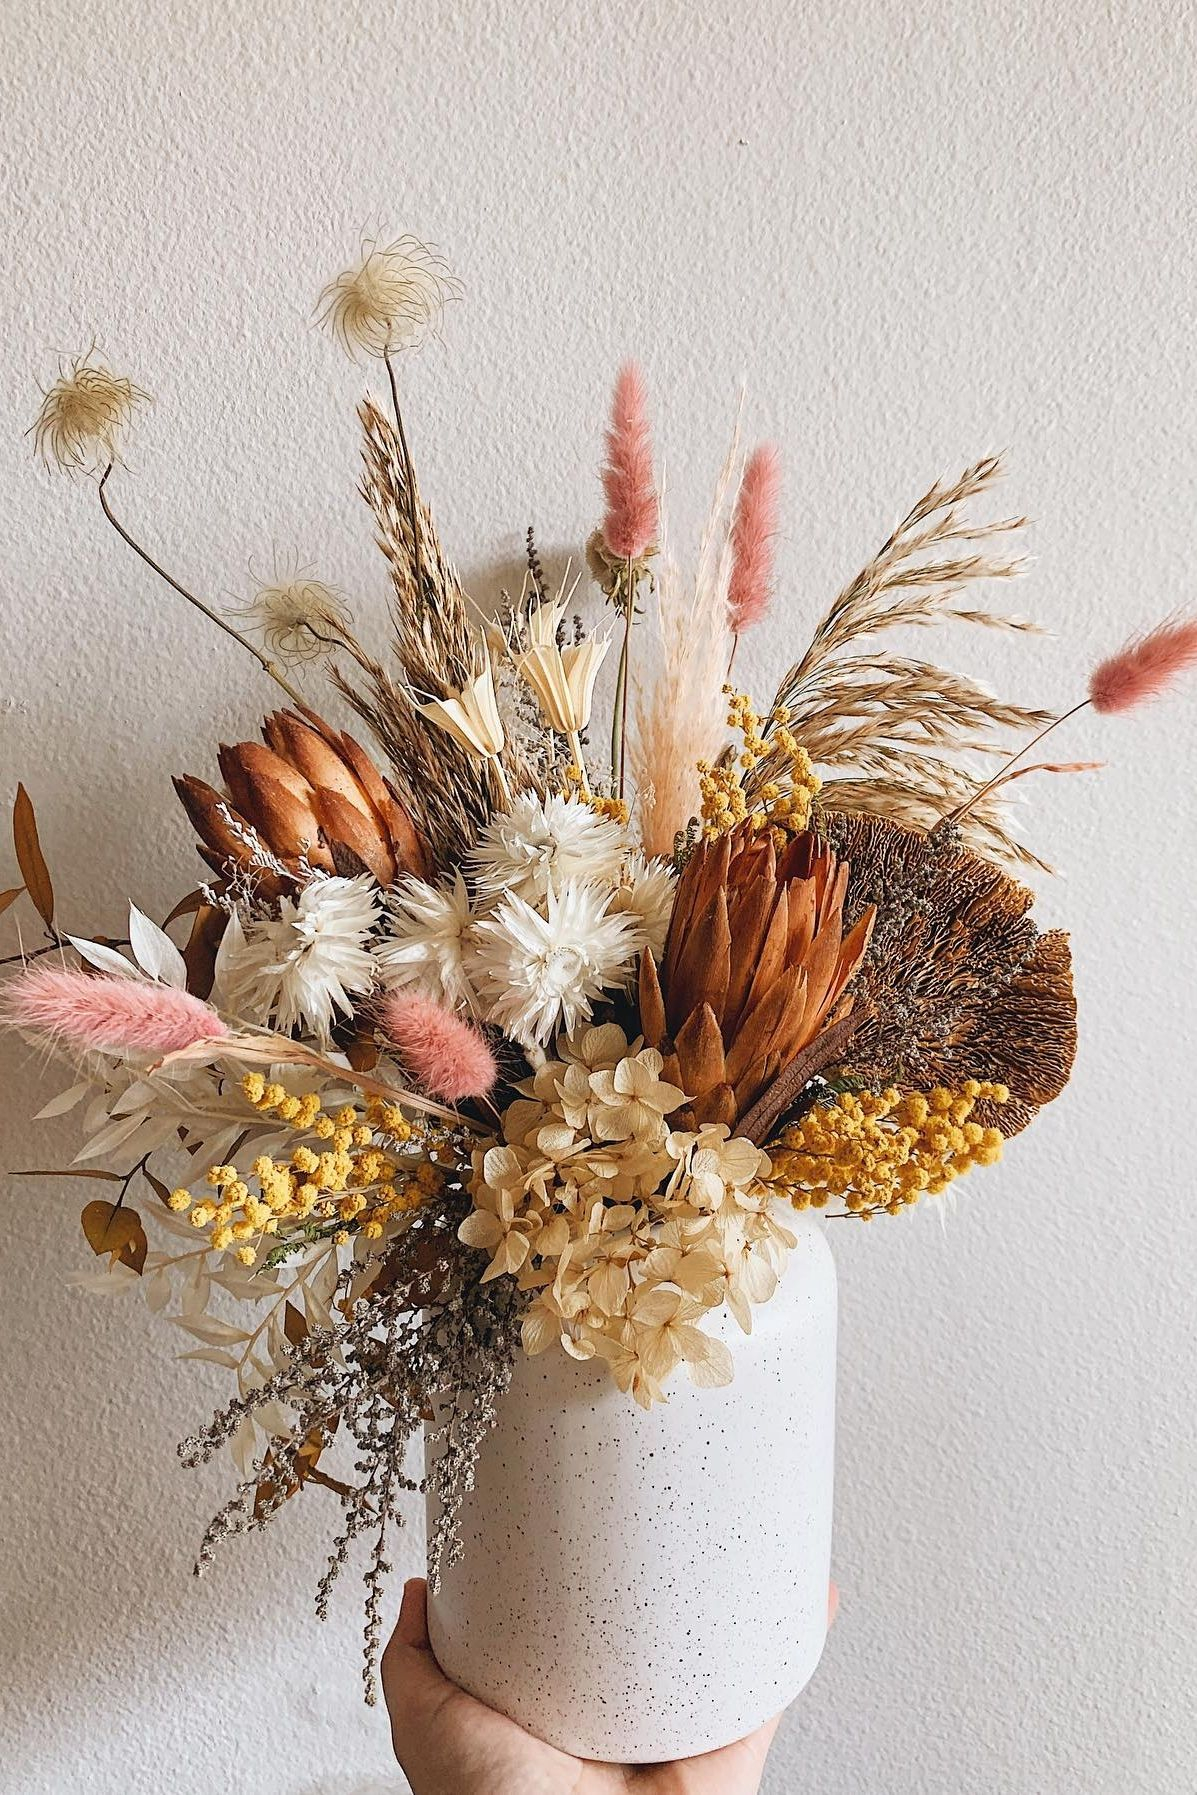 Simple Dried Flower Home Decoration In 2020 Dried Flower Arrangements Dried Flowers Dried Flower Bouquet